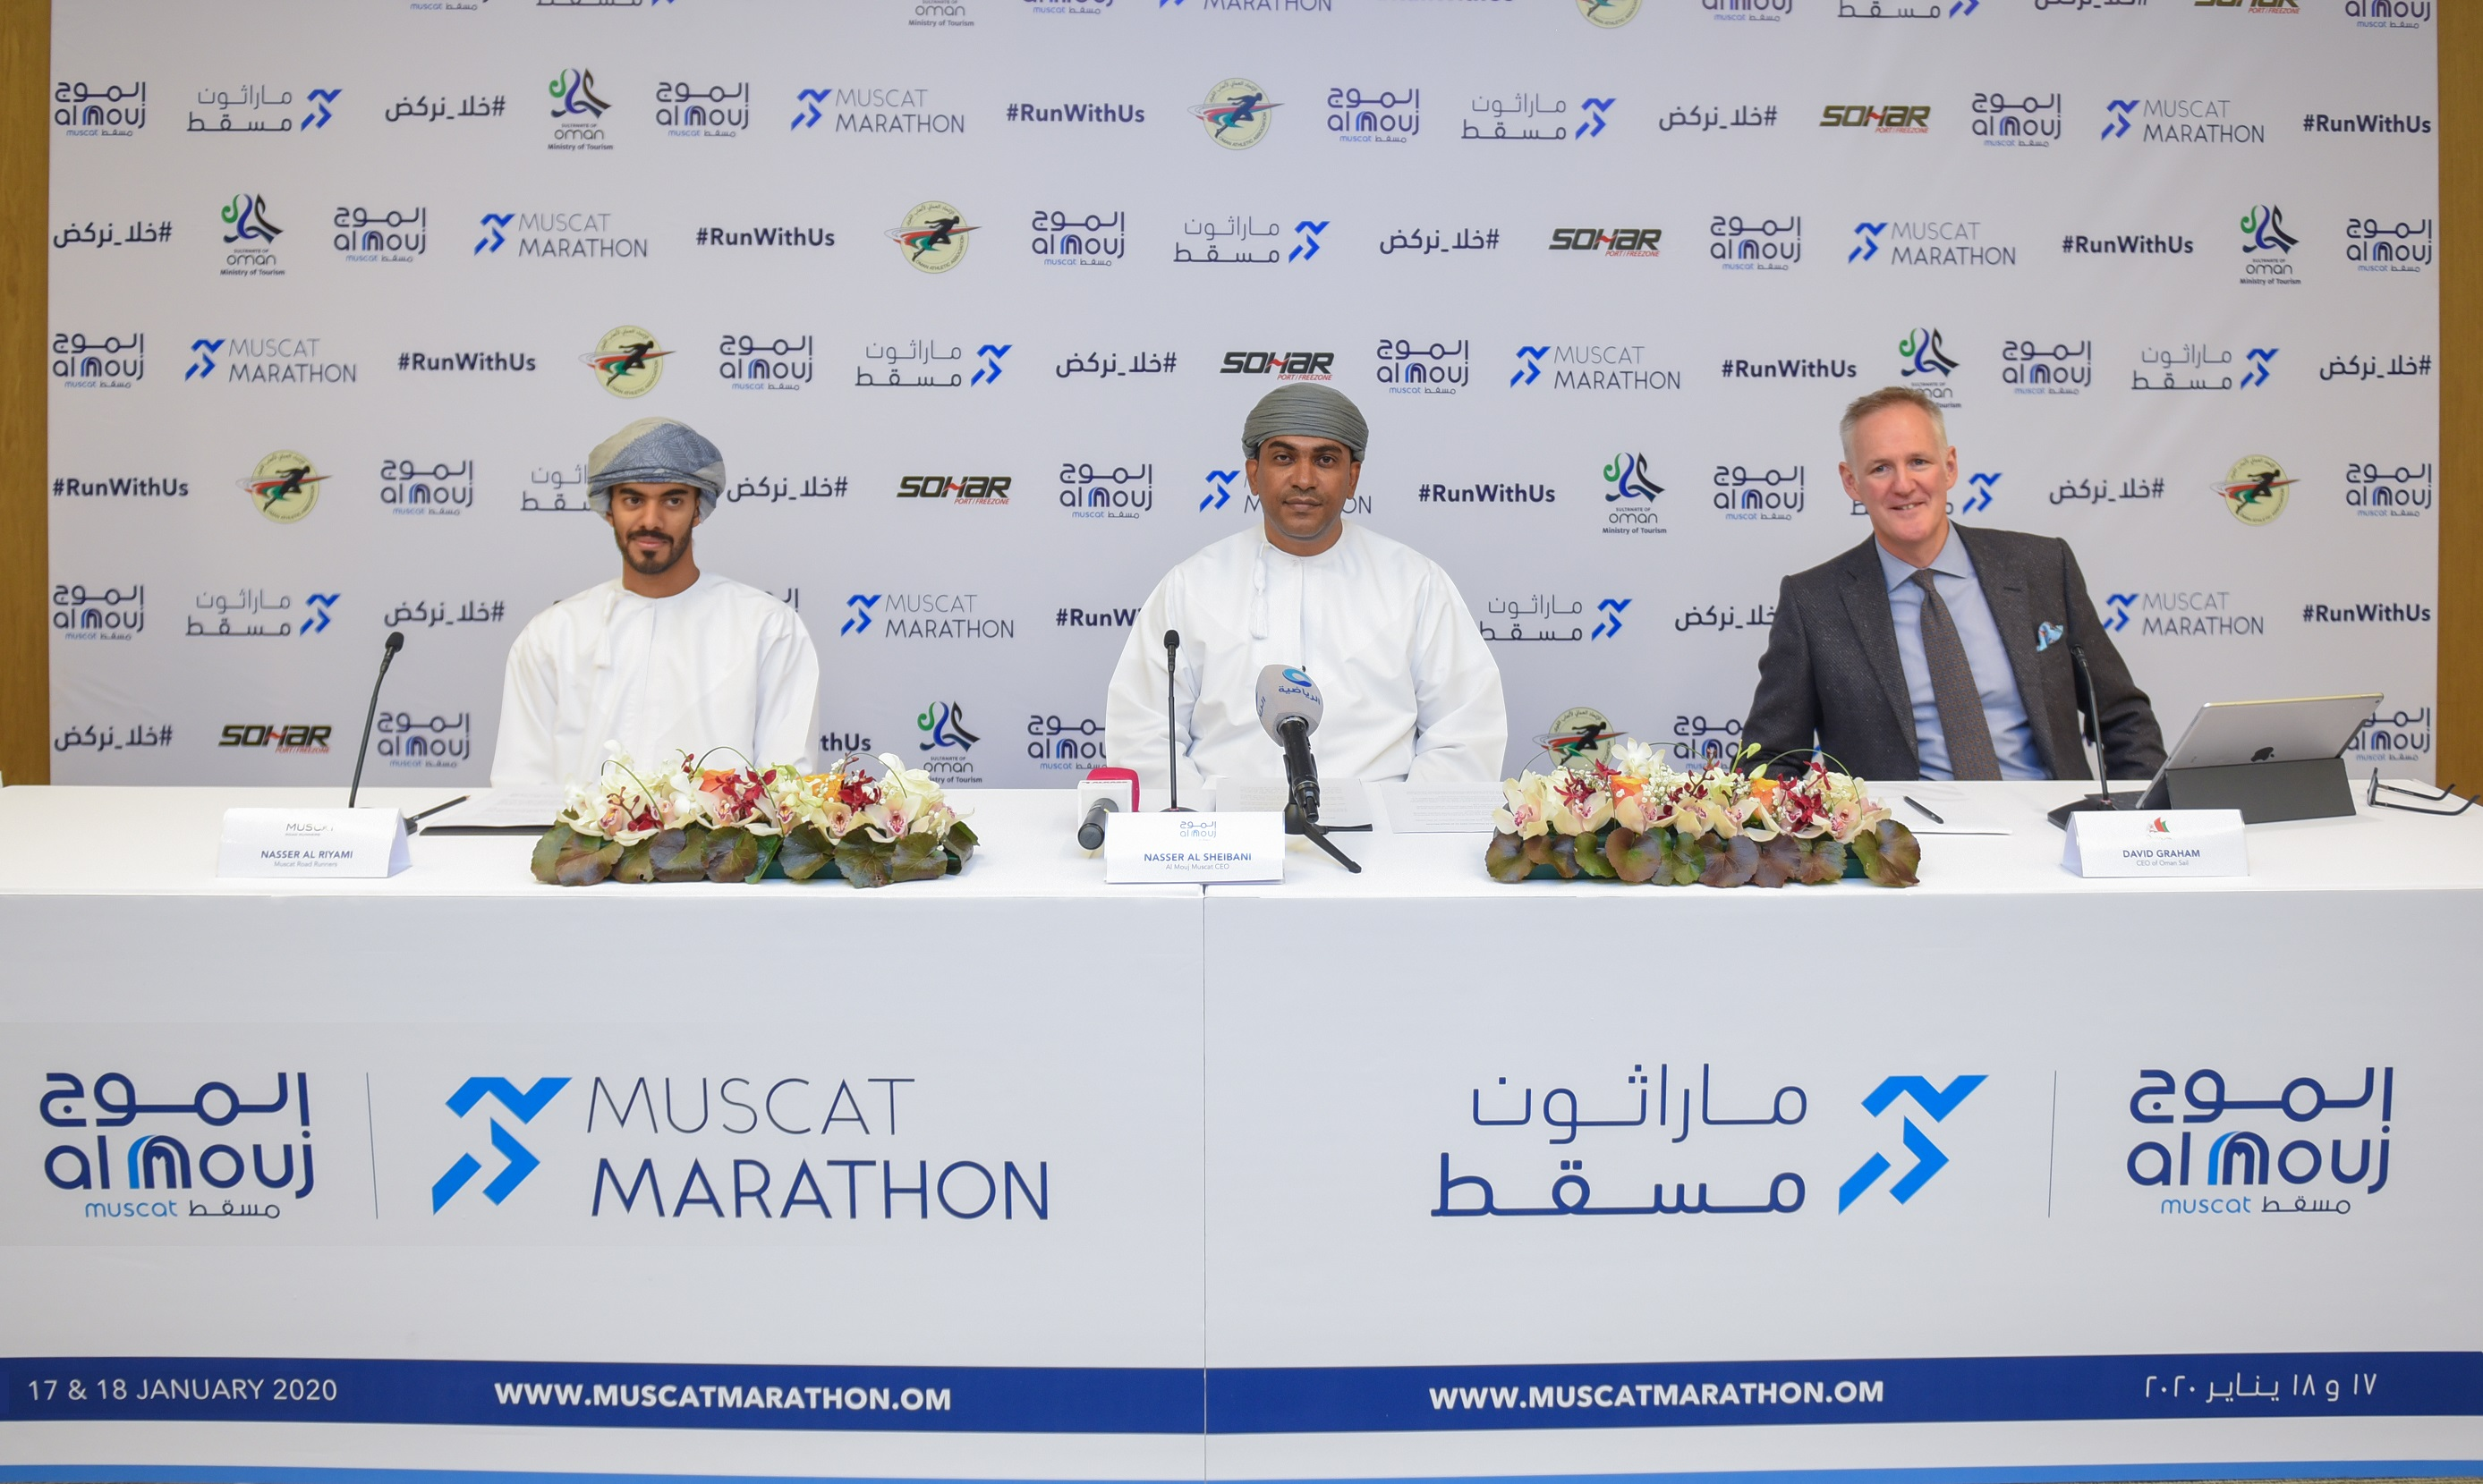 Oman's Sporting Legends join forces to get Omanis Active in Al Mouj Muscat Marathon 2020